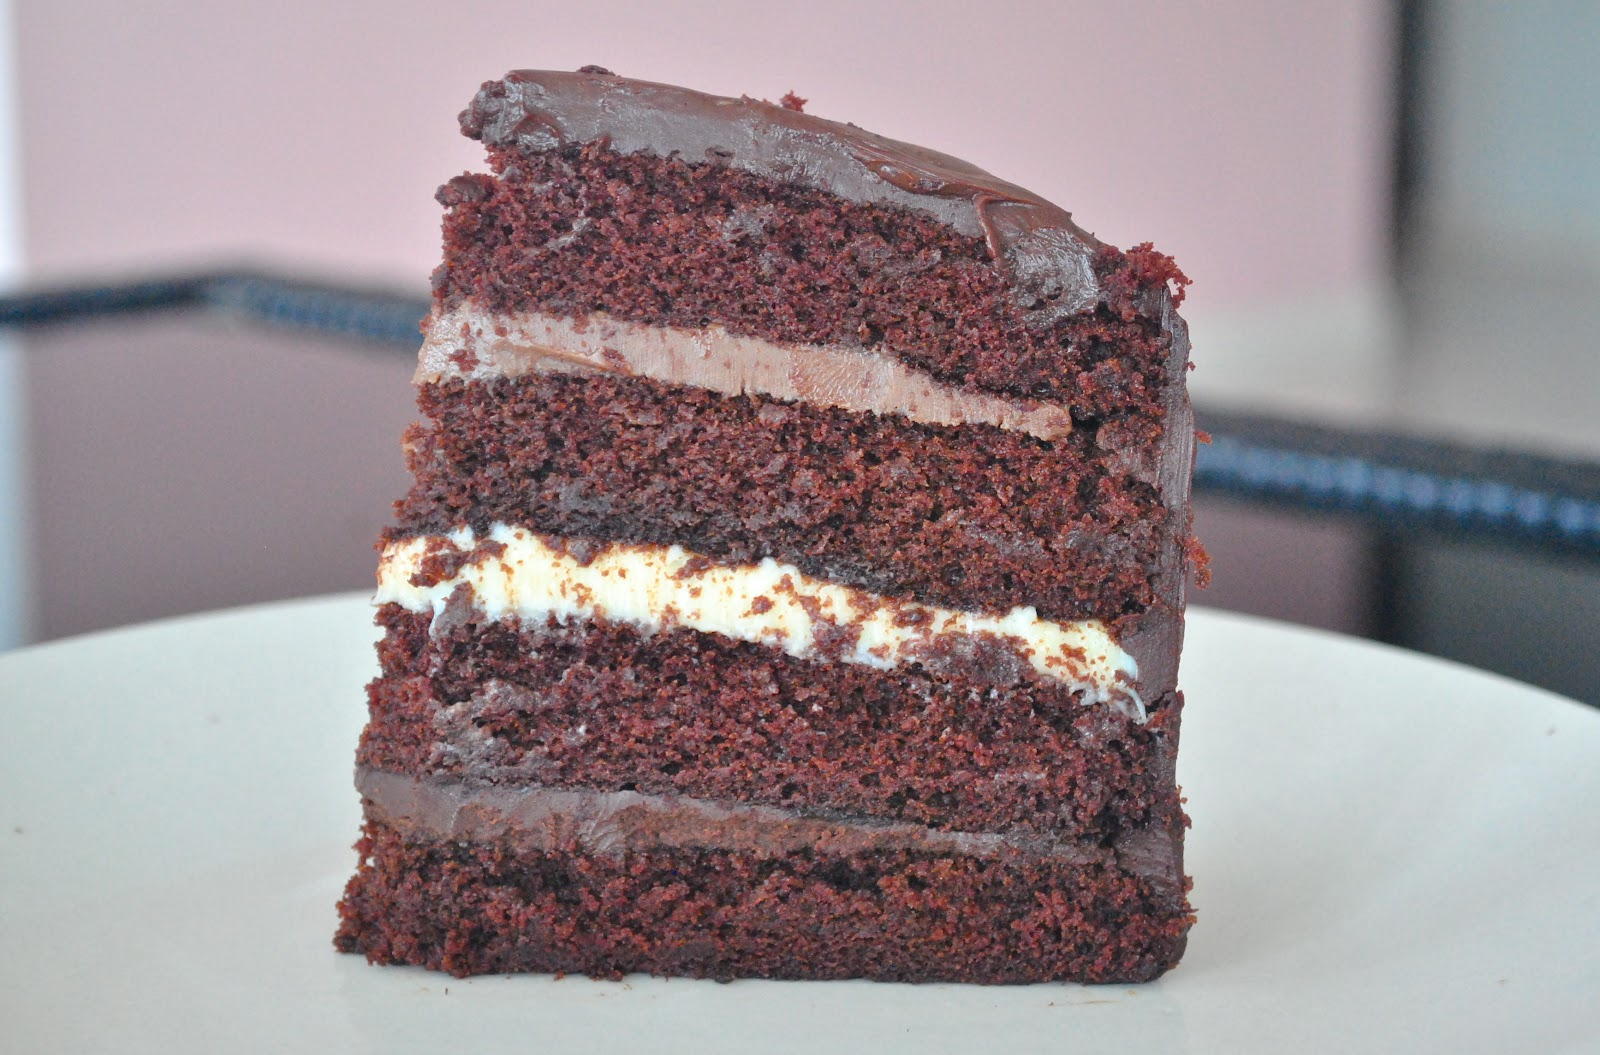 fridays with coco: triple chocolate ganache layer cake